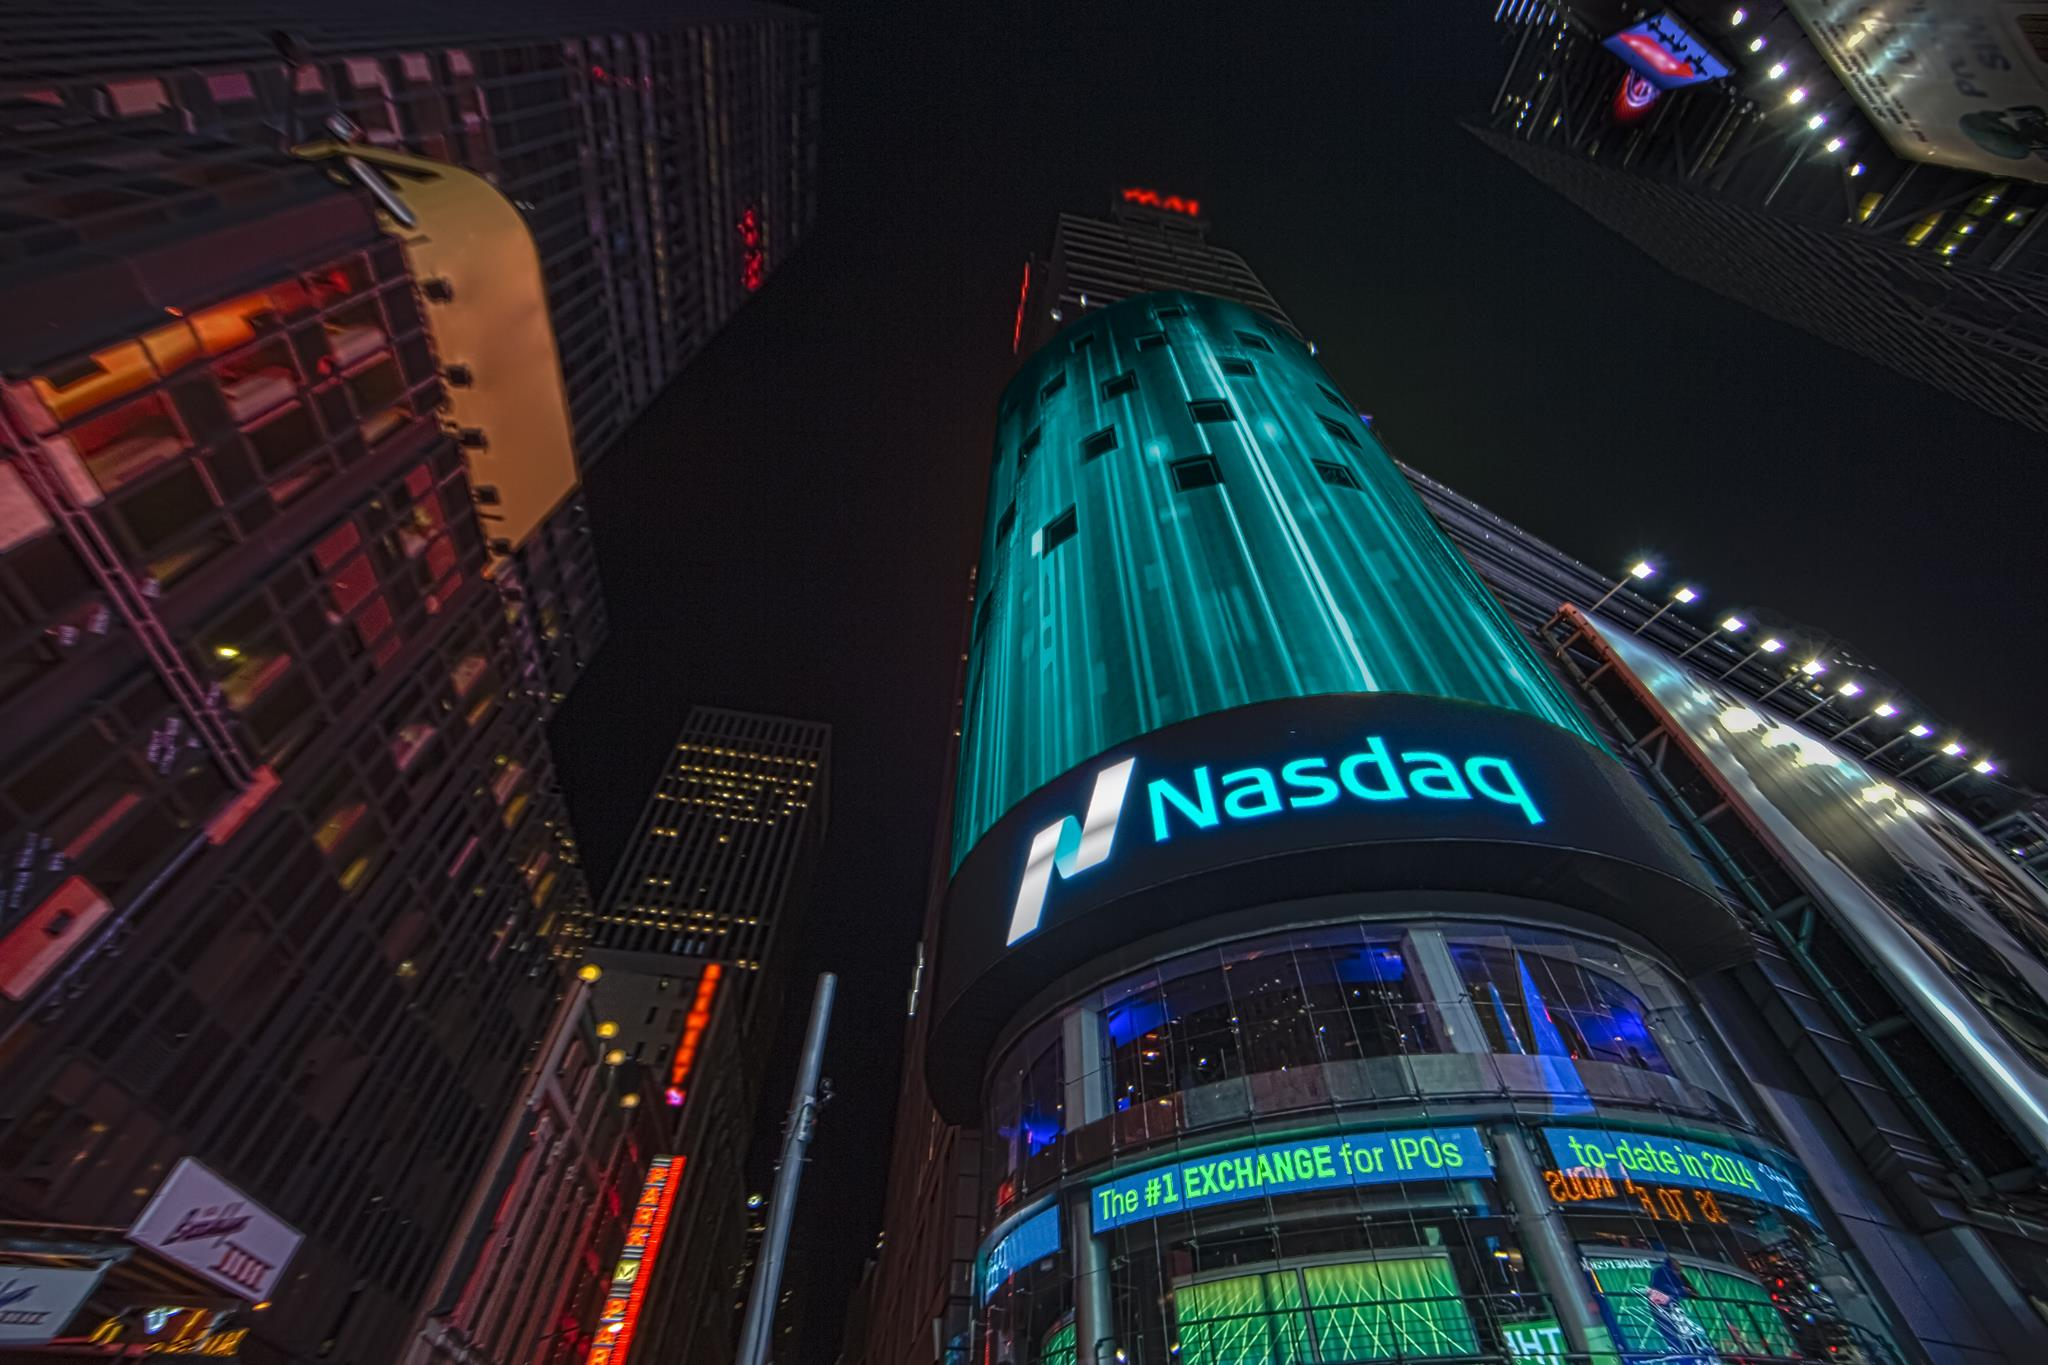 Nasdaq Adds Impressive 25 New ETF Listings for Q1